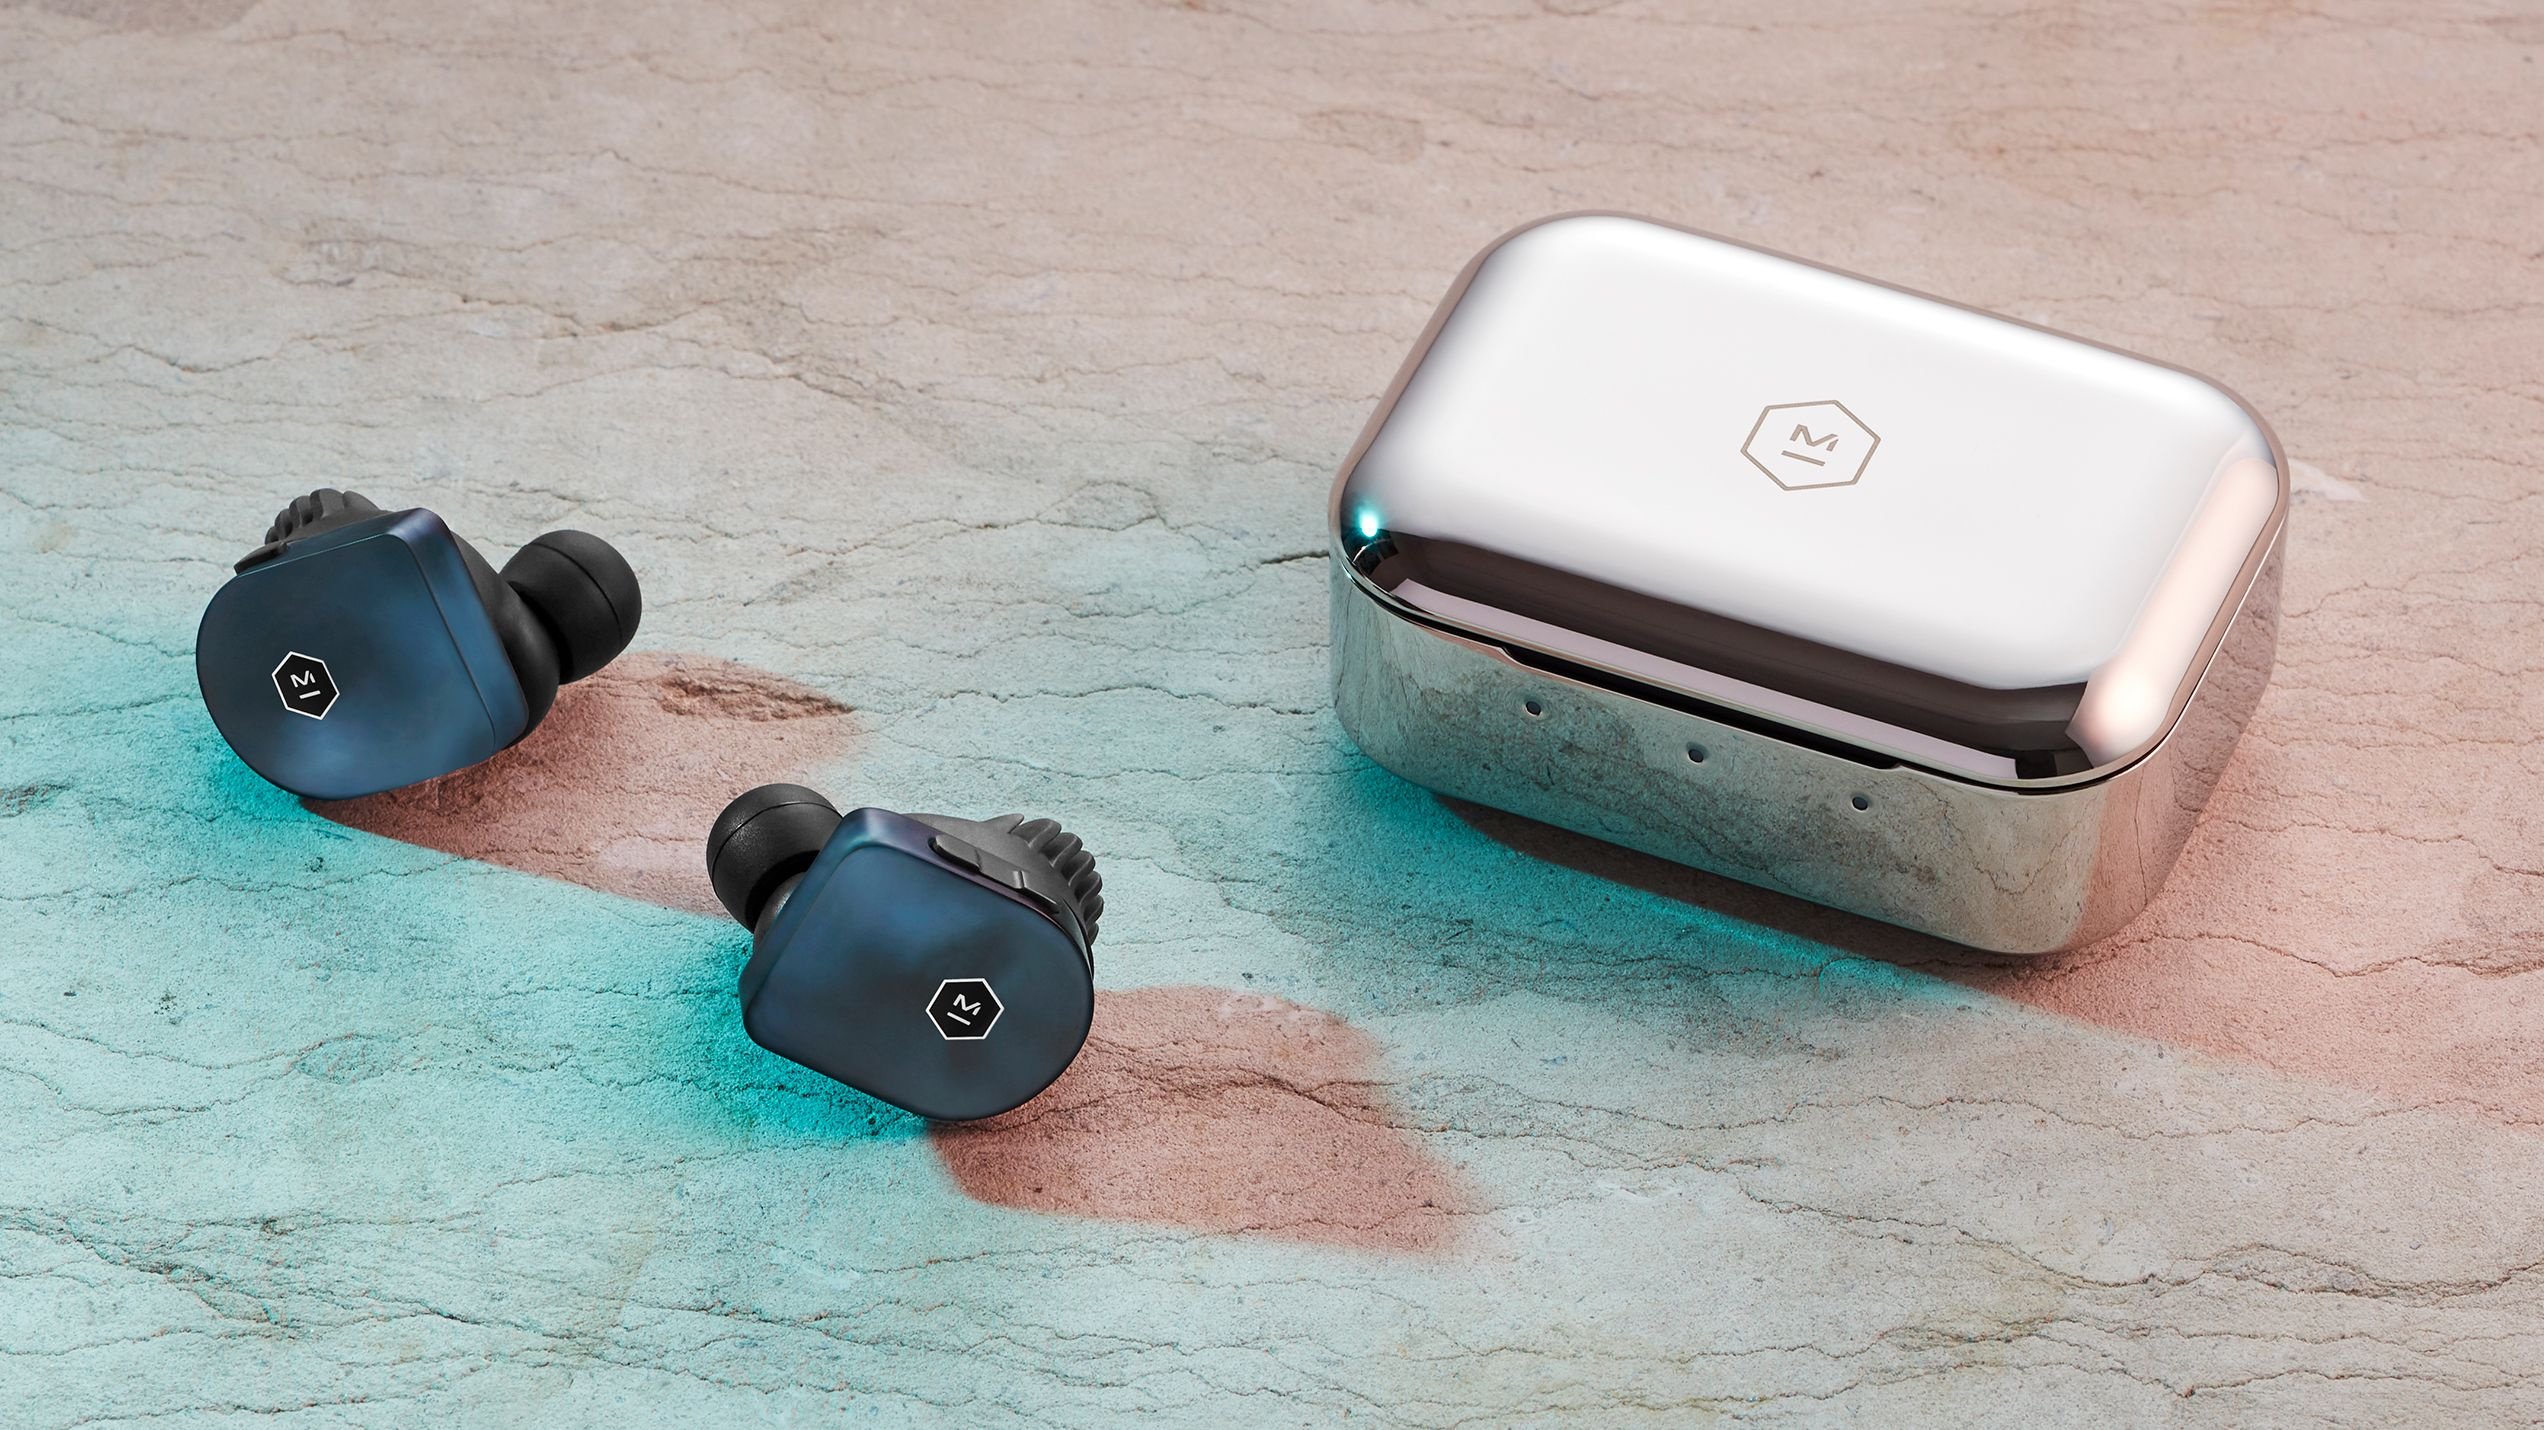 e676c6f6726 10 Best Wireless Earbuds of 2019 - Truly Wireless Earbud & Earphone Reviews